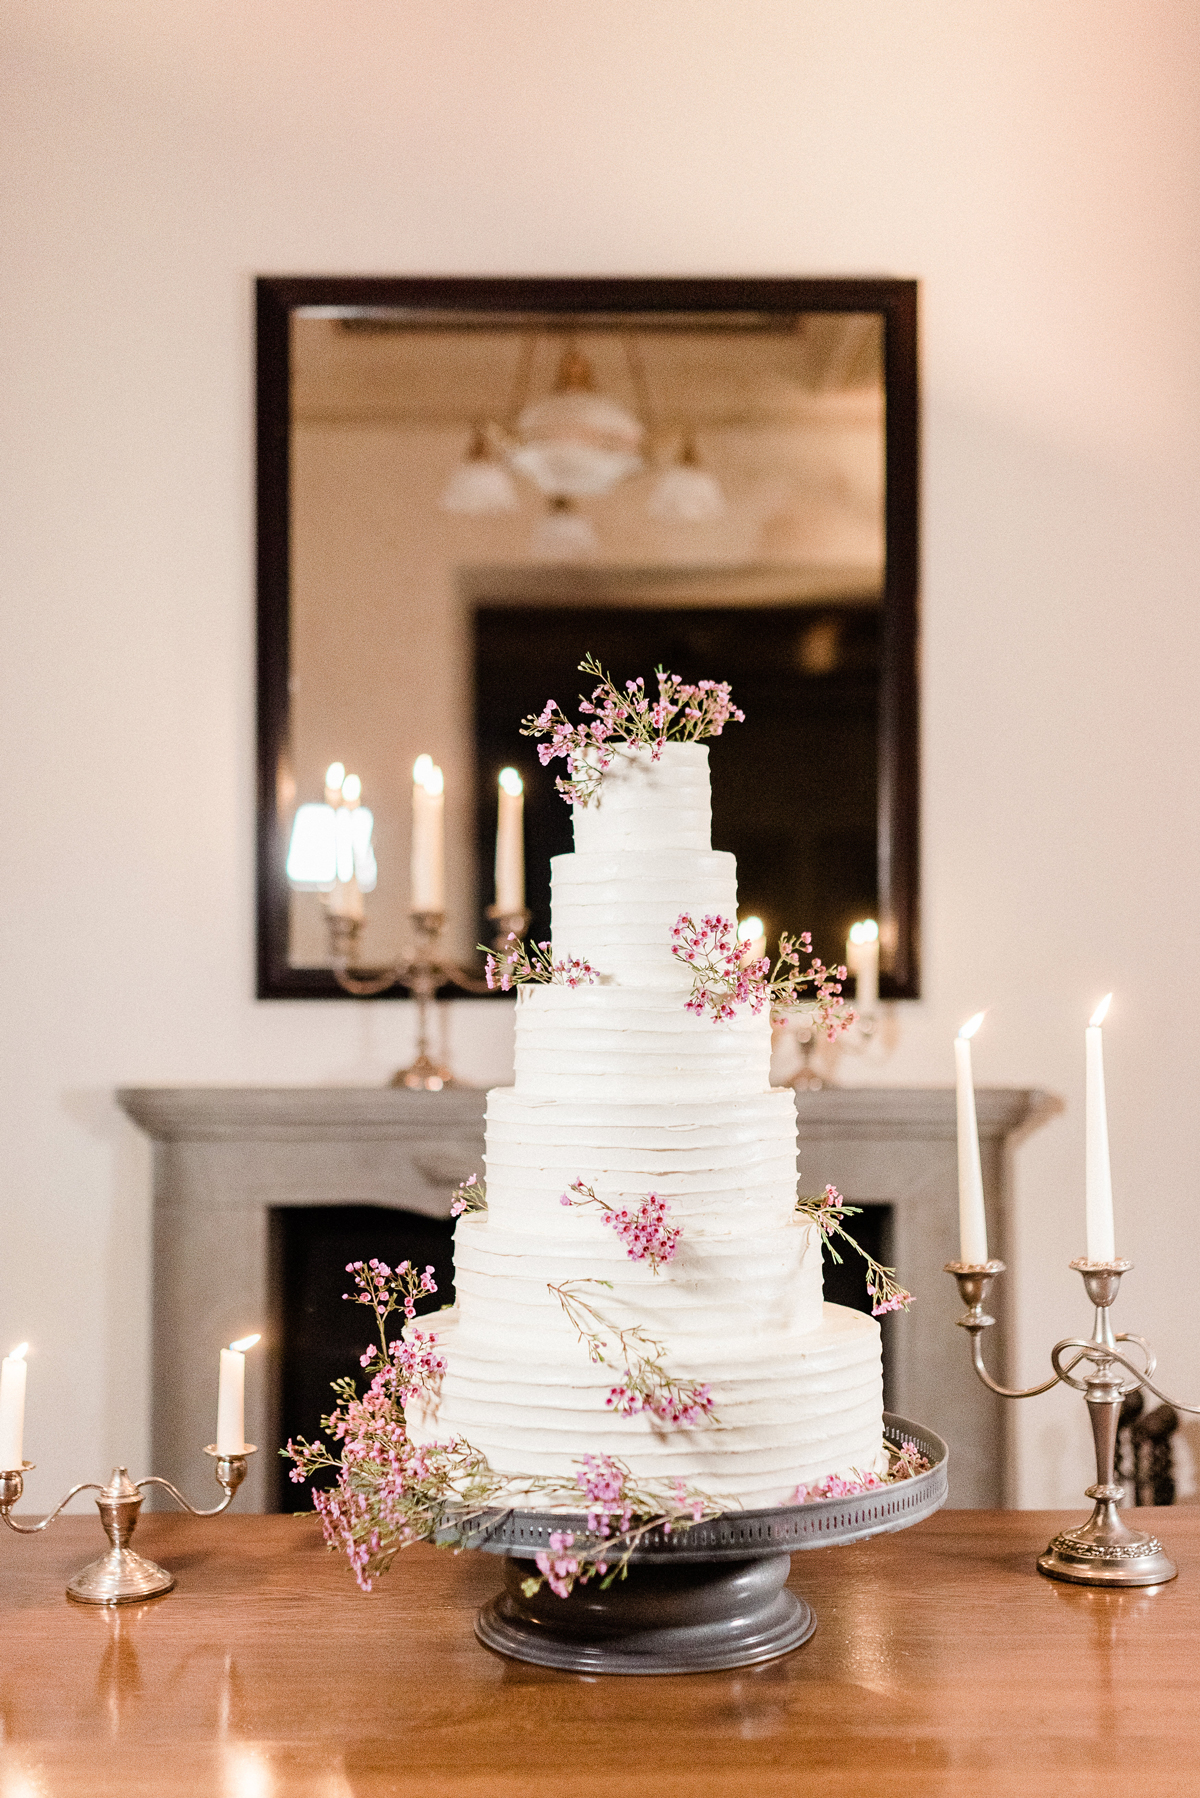 six tiered white frosted wedding cake with pink floral decor accents